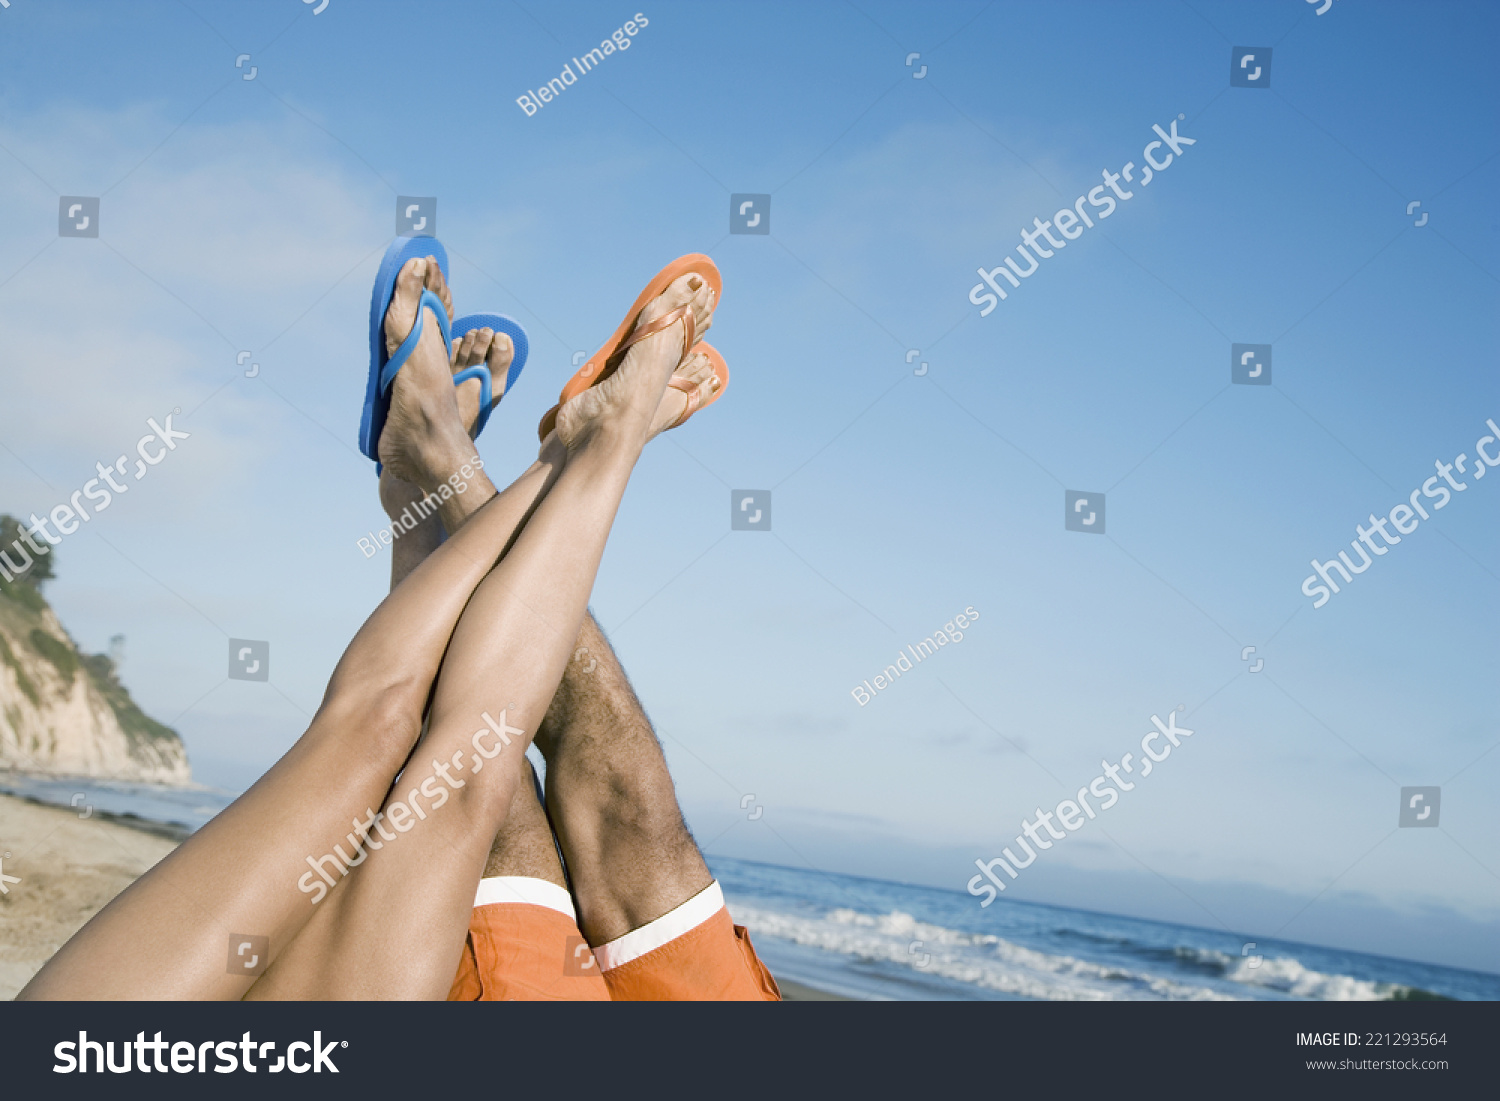 Multi-ethnic couple with feet in air #221293564